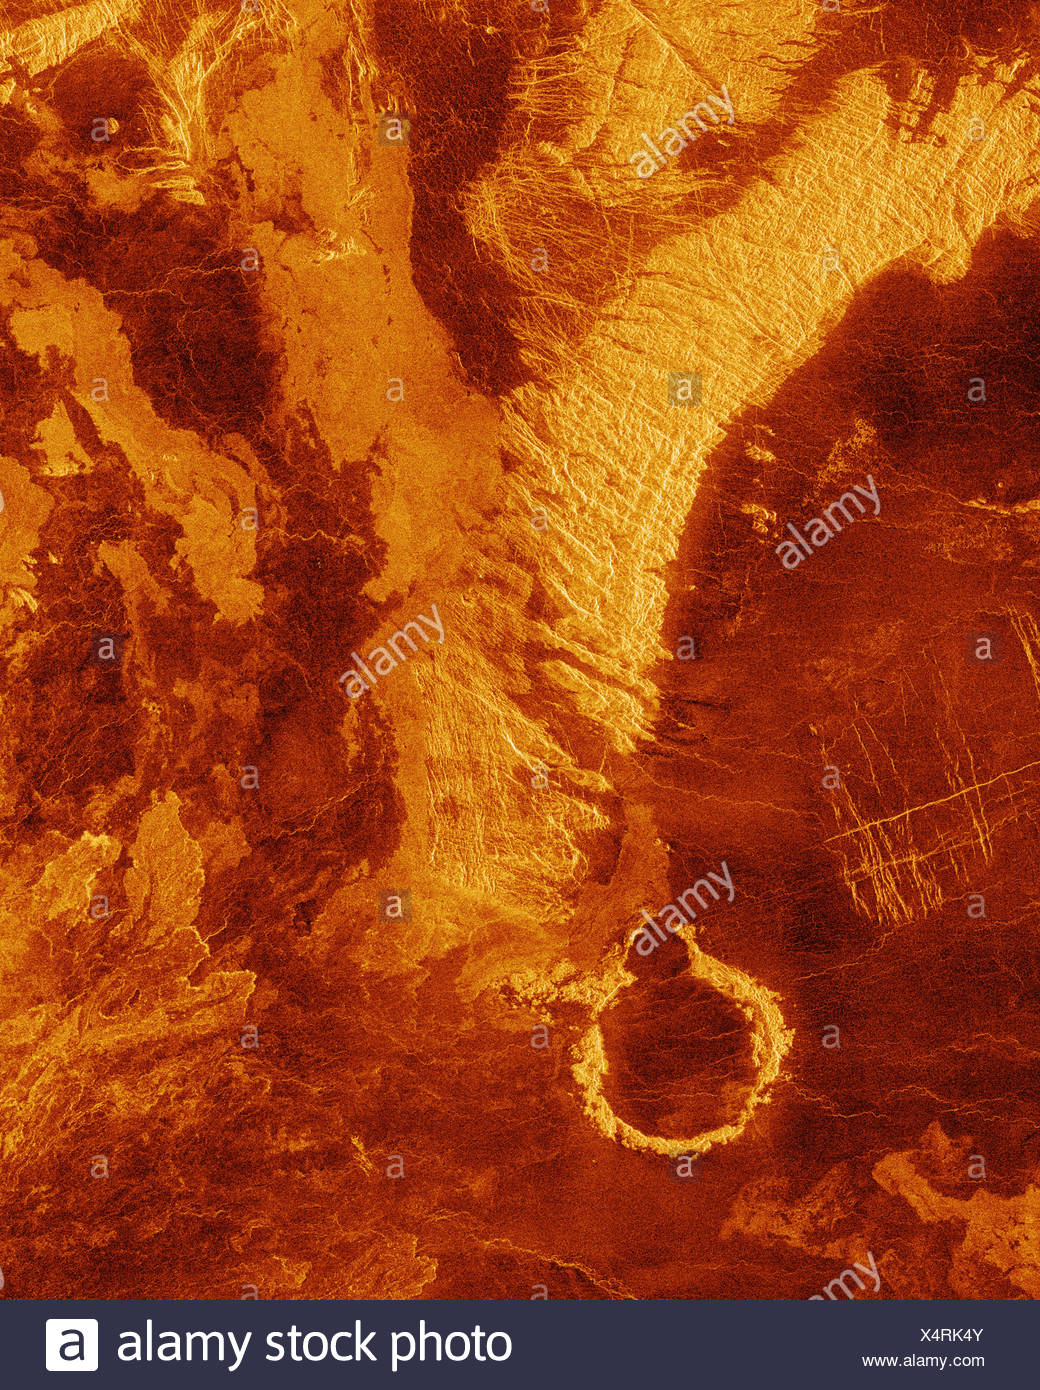 Plains and Impact Crater on Venus Seen by Magellan (Digitally Generated) - Stock Image